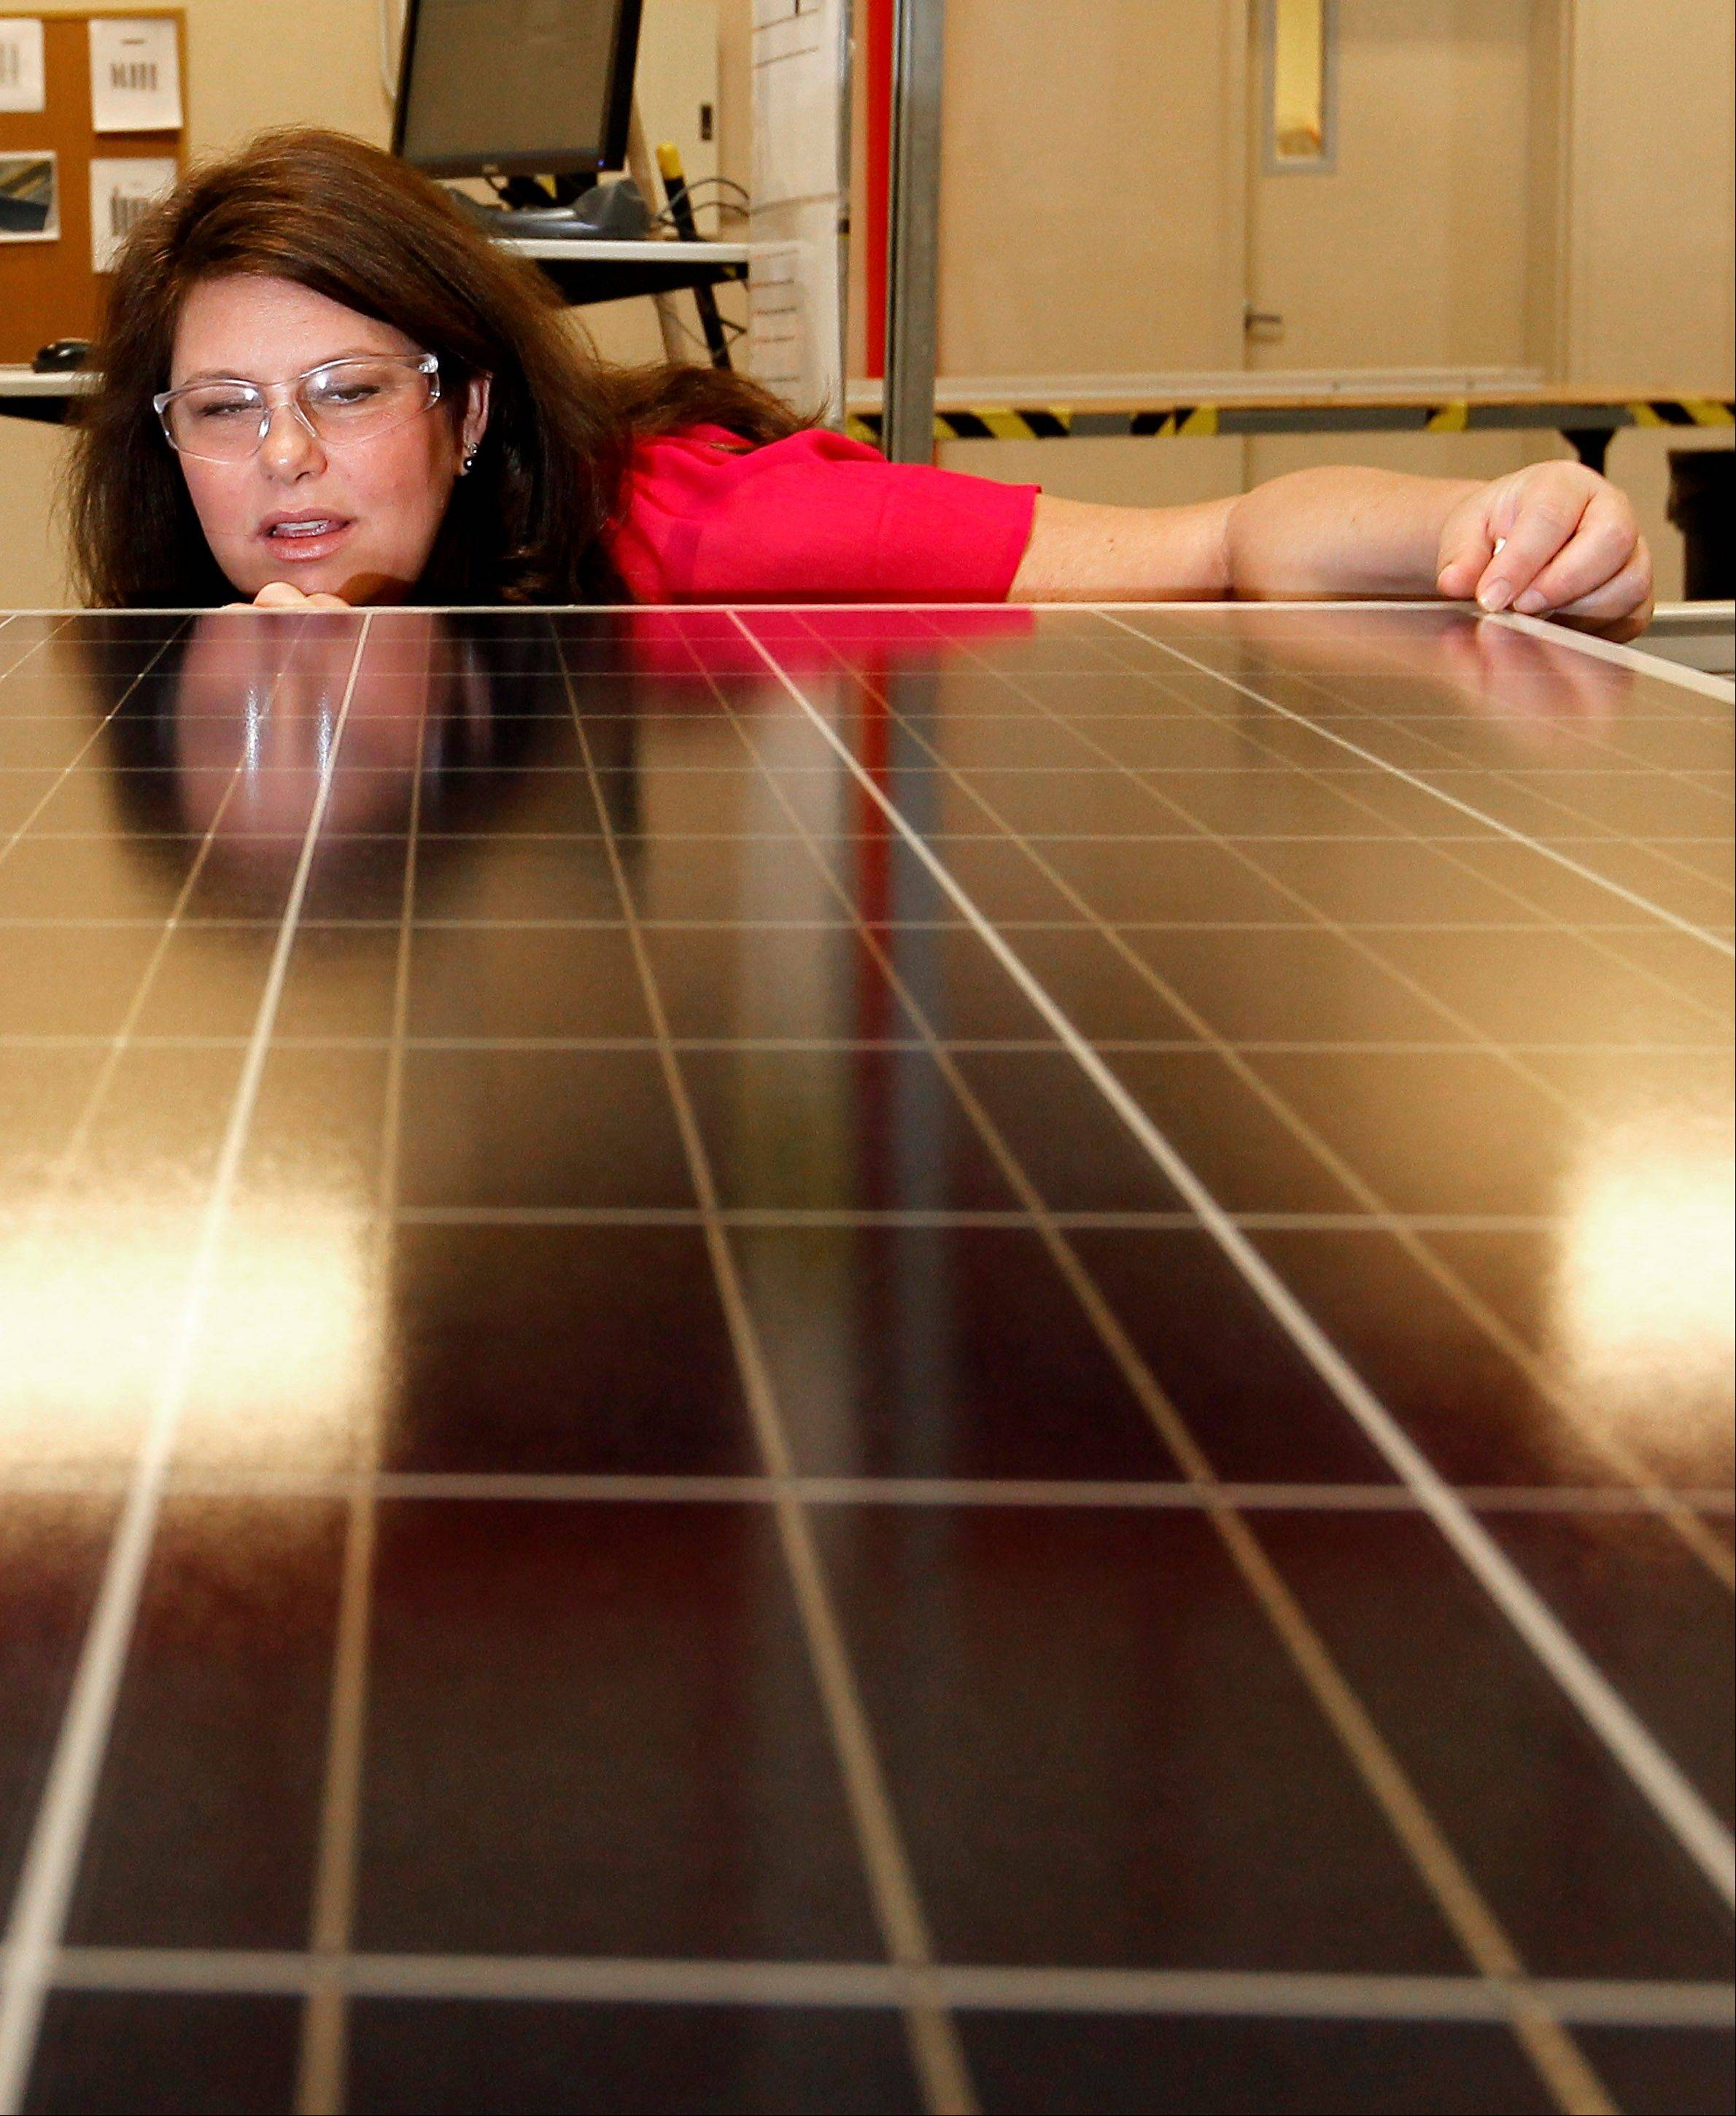 tacey Rassas, a quality control manager at Suntech Power Holdings Co., a Chinese-owned solar panel manufacturer, examines a solar panel at a company facility in Goodyear, Ariz. The factory makes solar panels for one of the world�s biggest solar manufacturers.